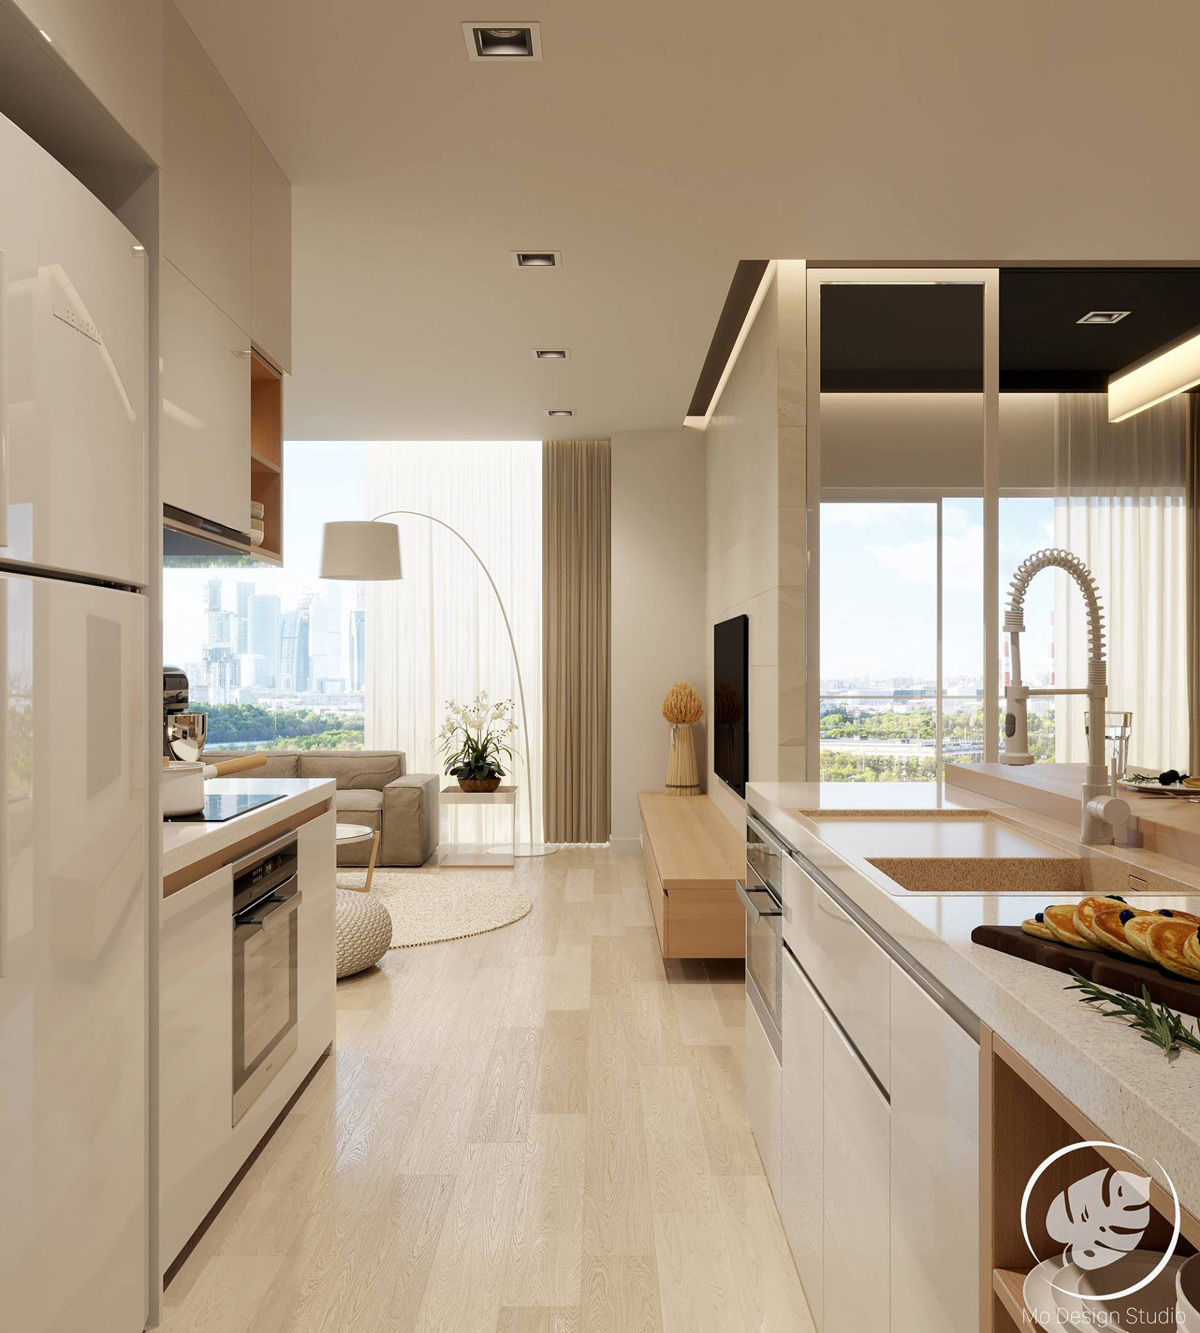 Single Bedroom Apartments: Single Bedroom Apartments That Are Perfect For The Single